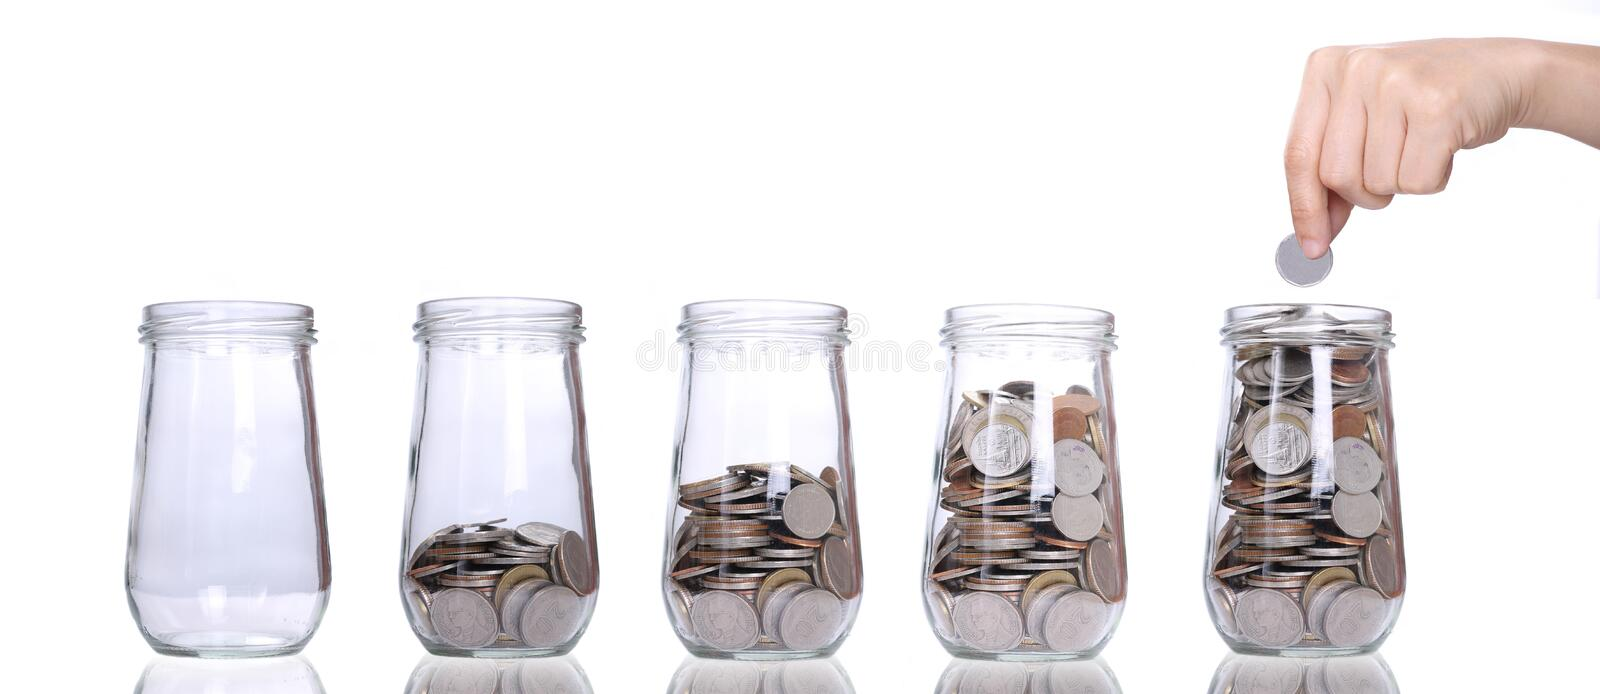 Filling up coins to empty glass royalty free stock image